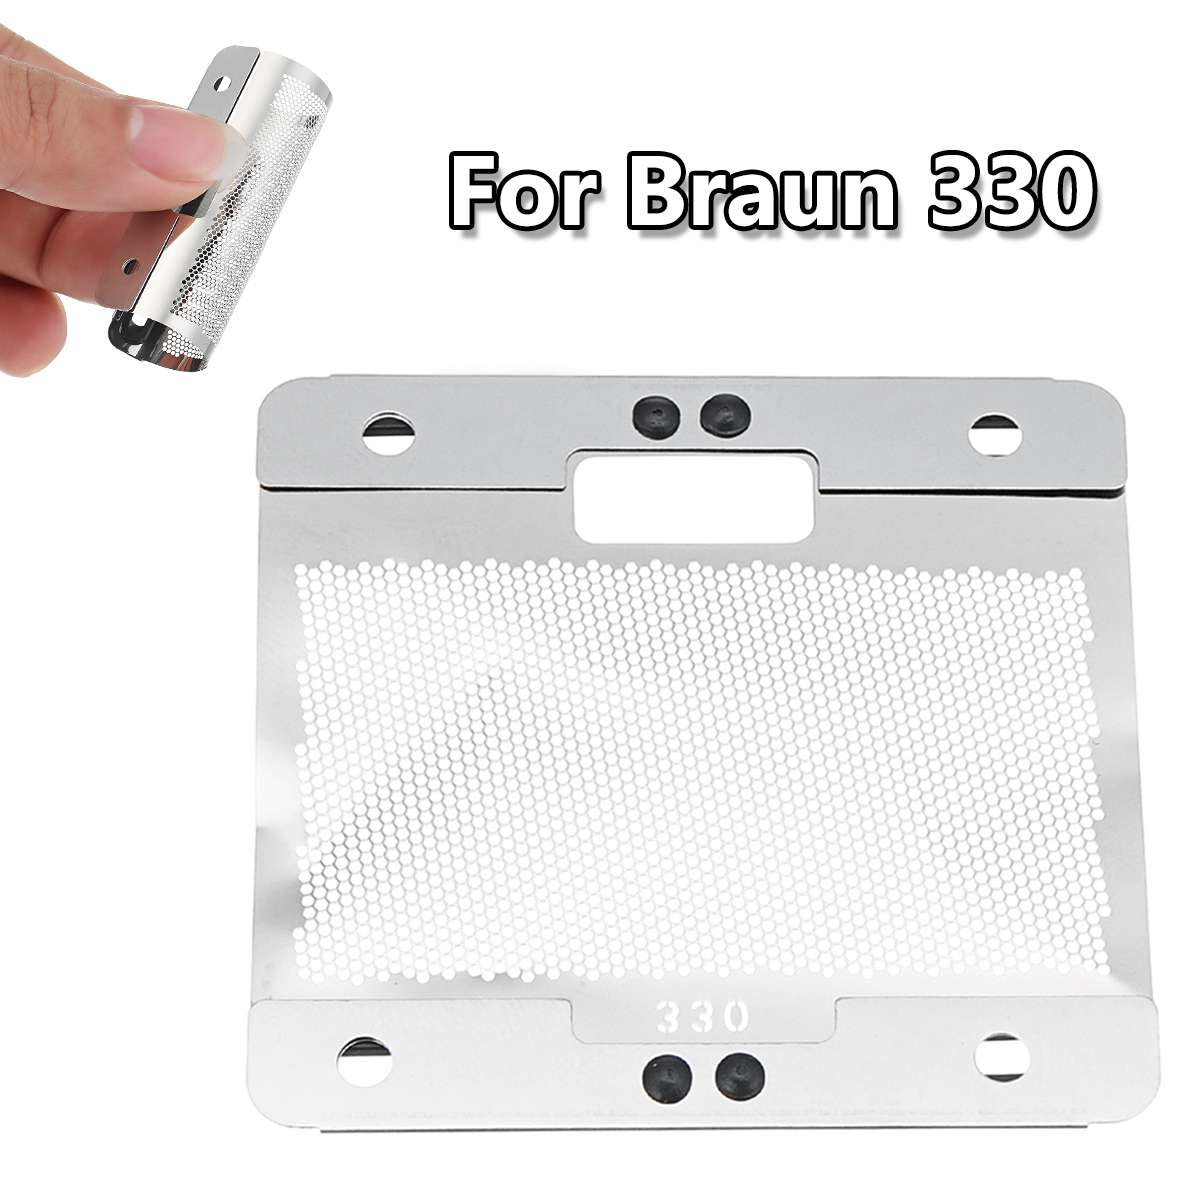 Replacement RazorsBlade Foil For Braun 330